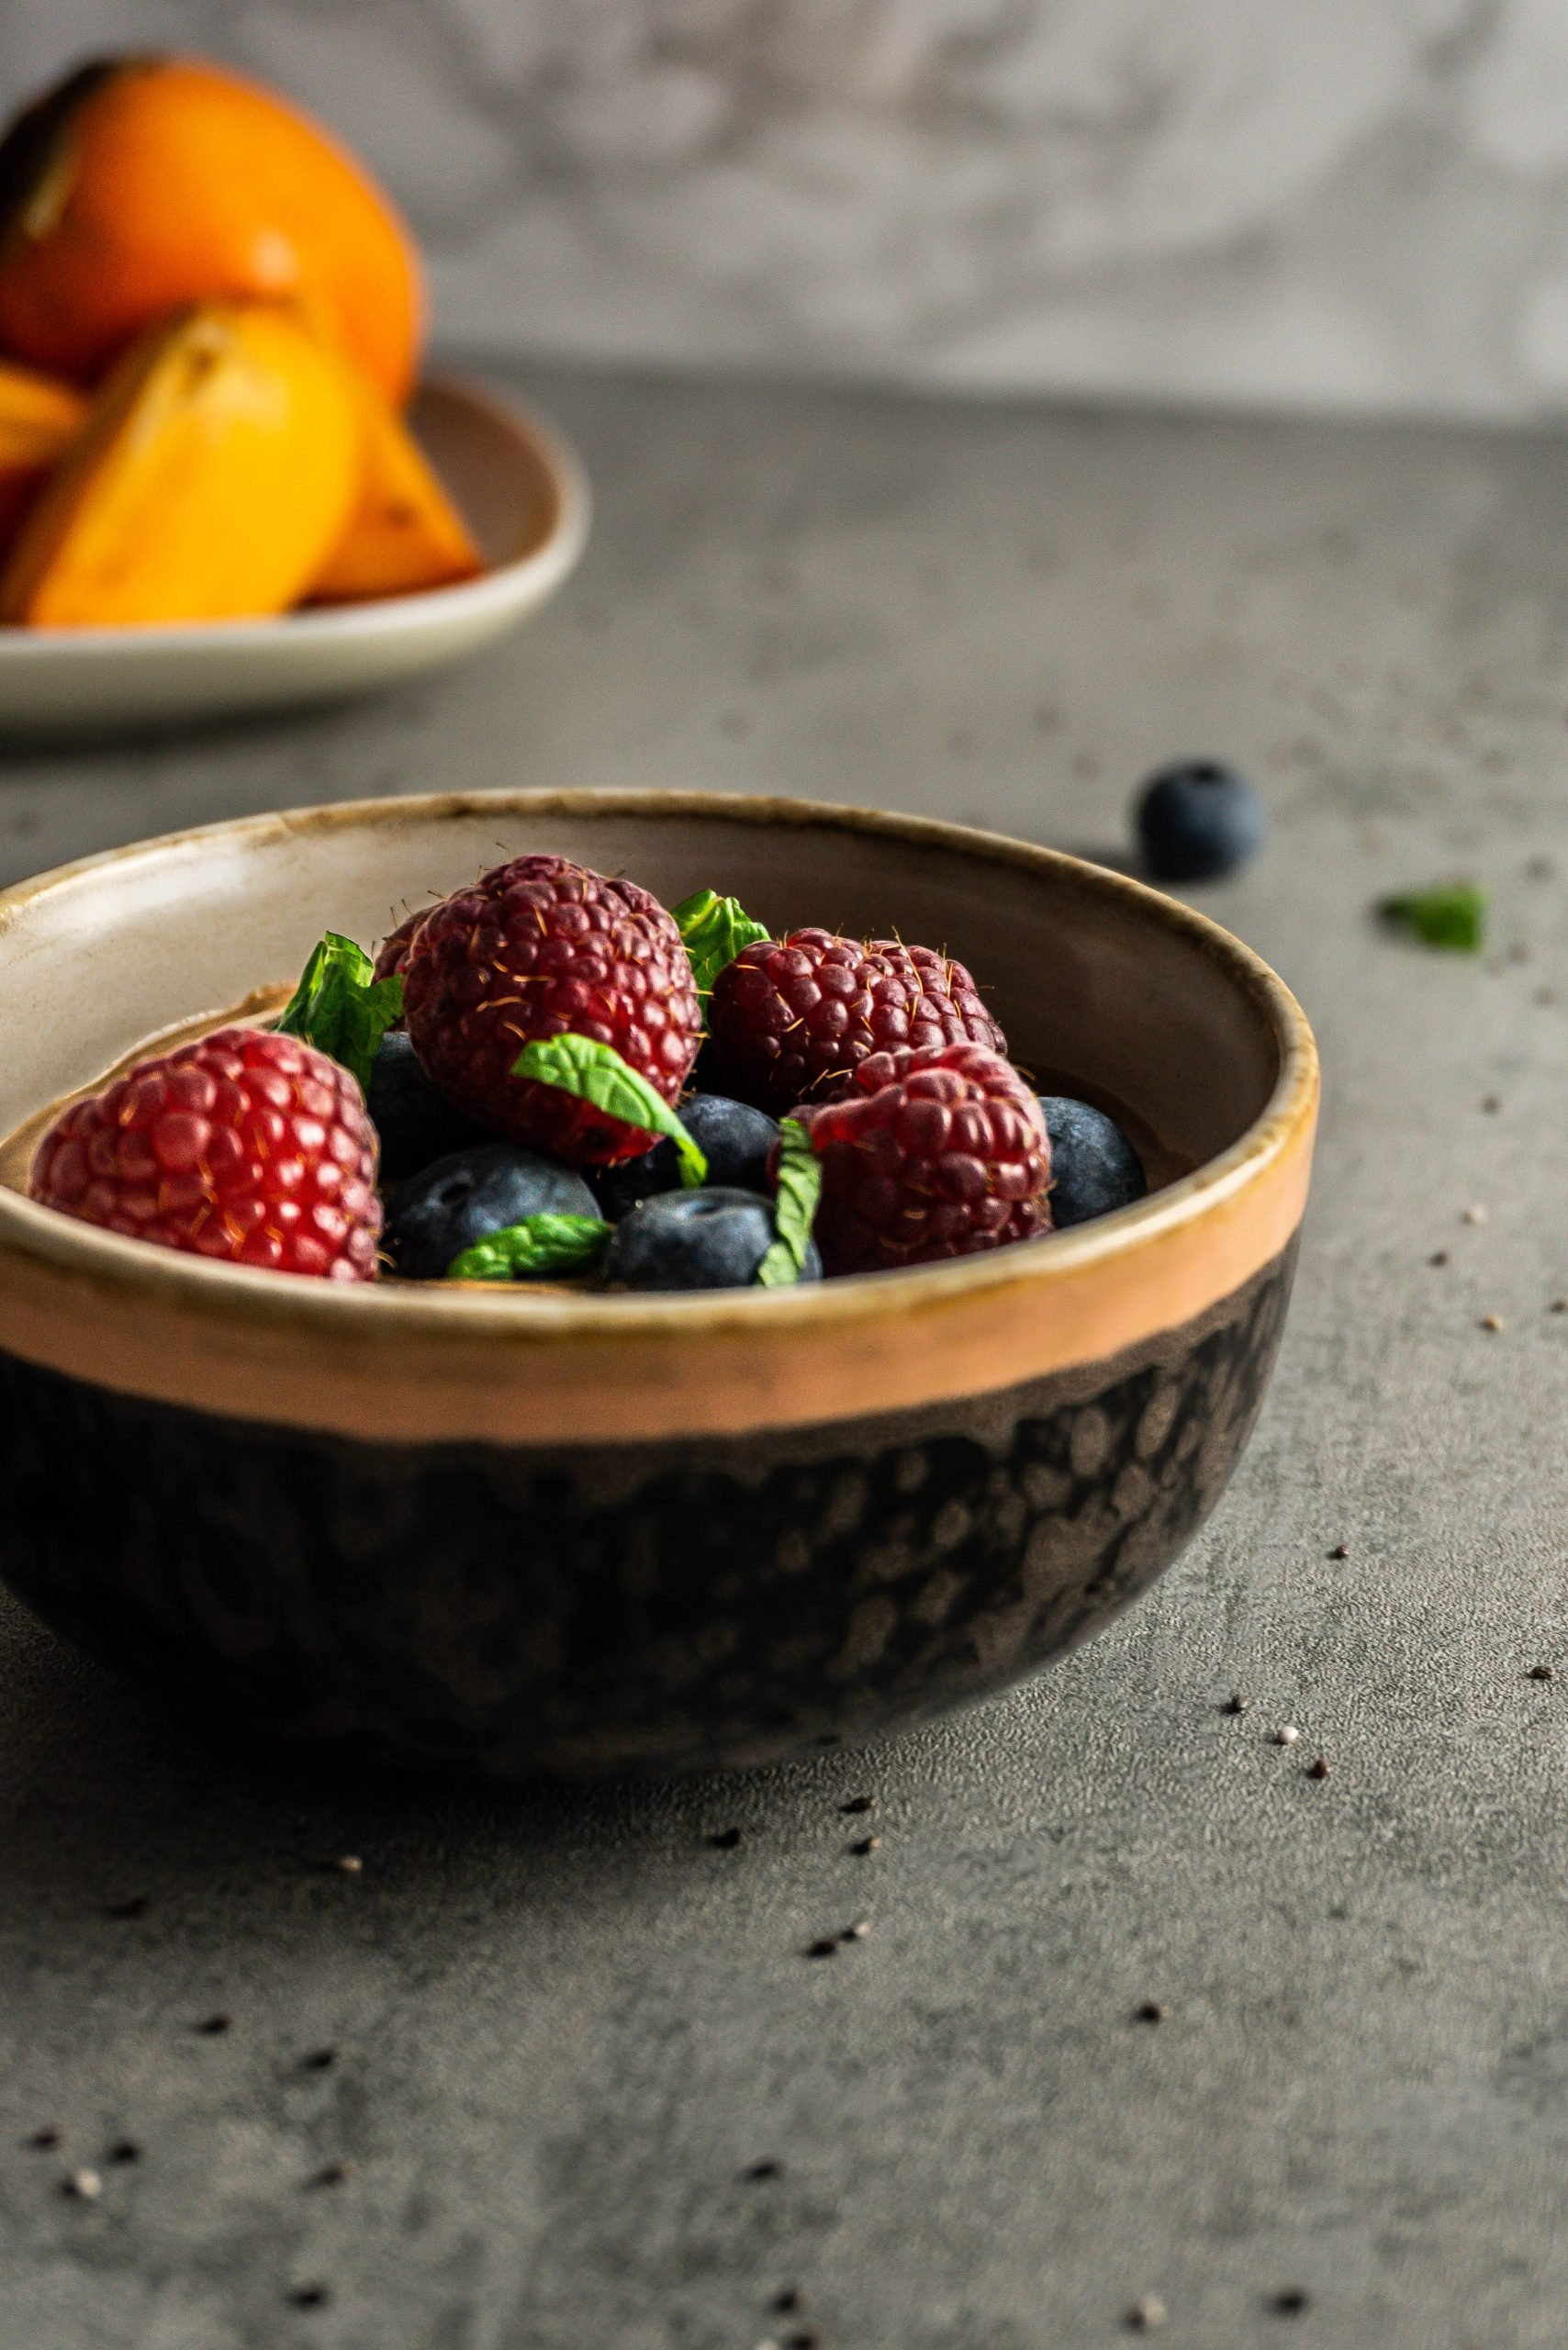 Chocolate Chia Seed Pudding in a bowl, topped with blueberries, raspberries, mint leaves. Photographed from a three-quarter angle with chia seeds scattered around and persimmons visible in the background